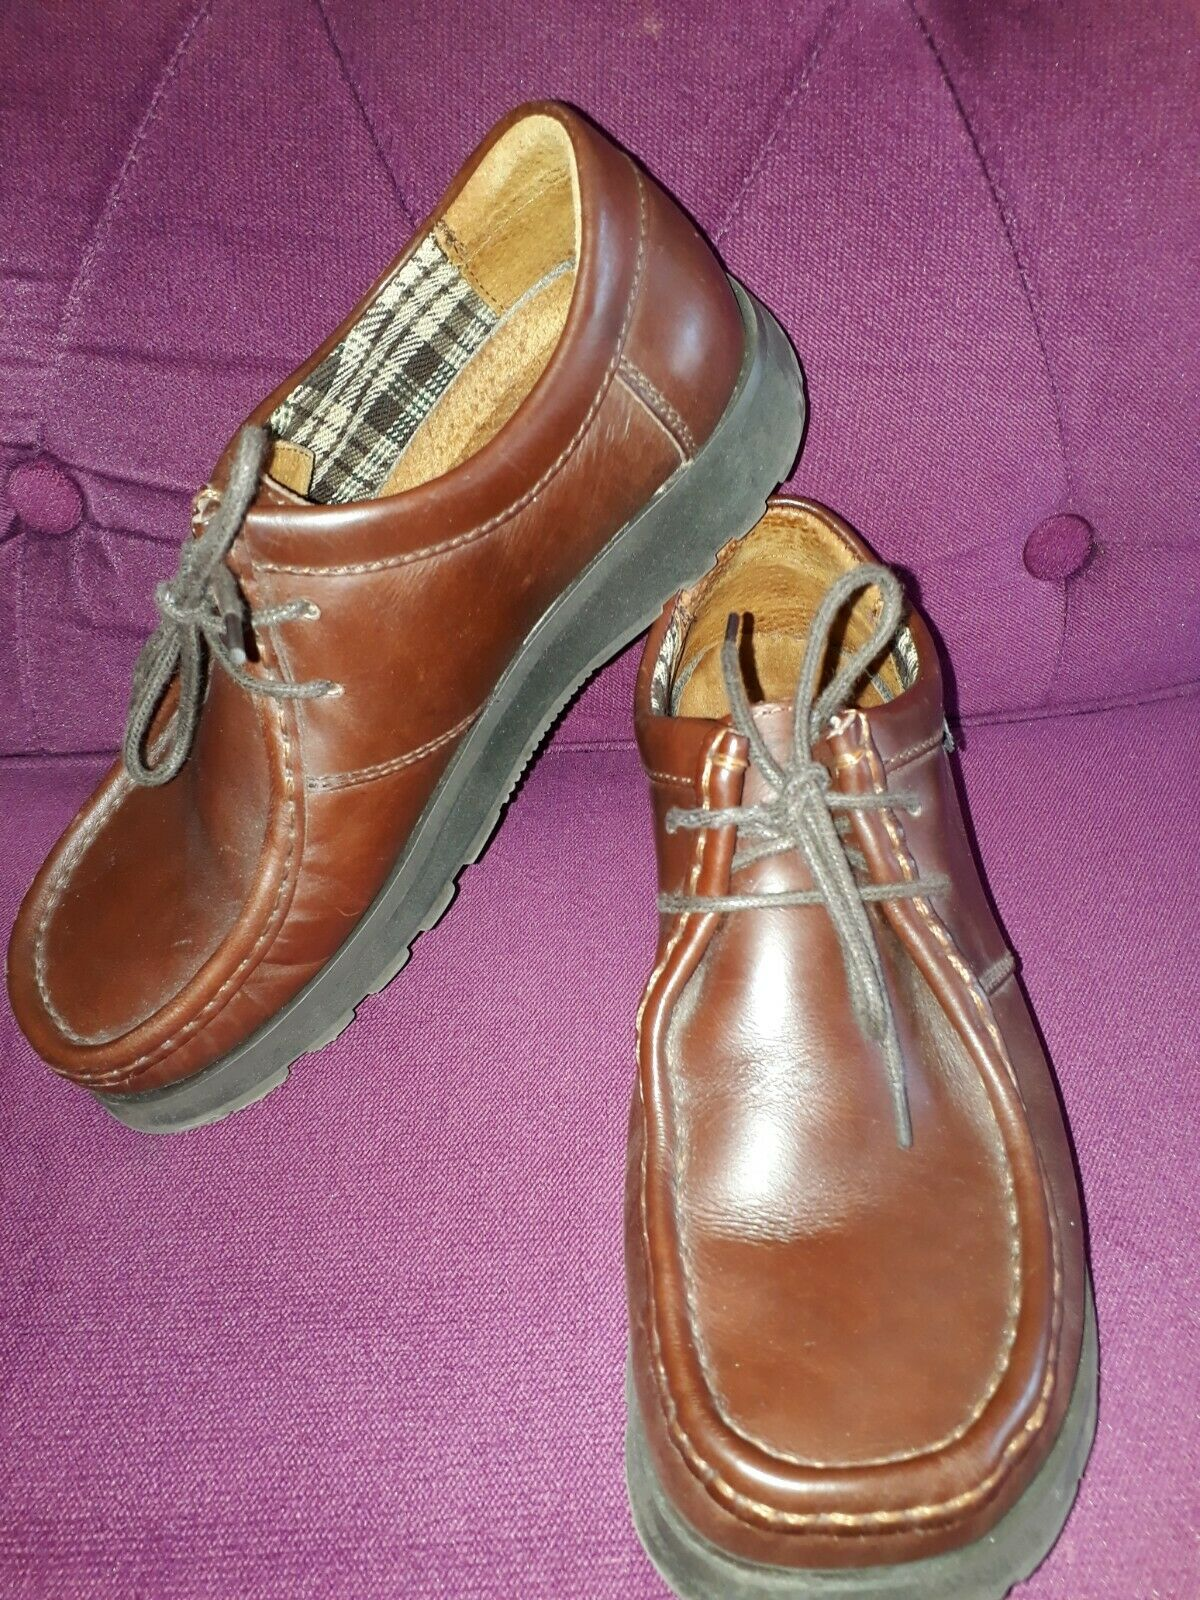 IKON MID BROWN LEATHER LACE UP PASTIE SHOES SIZE 6 EU 40 - VGC